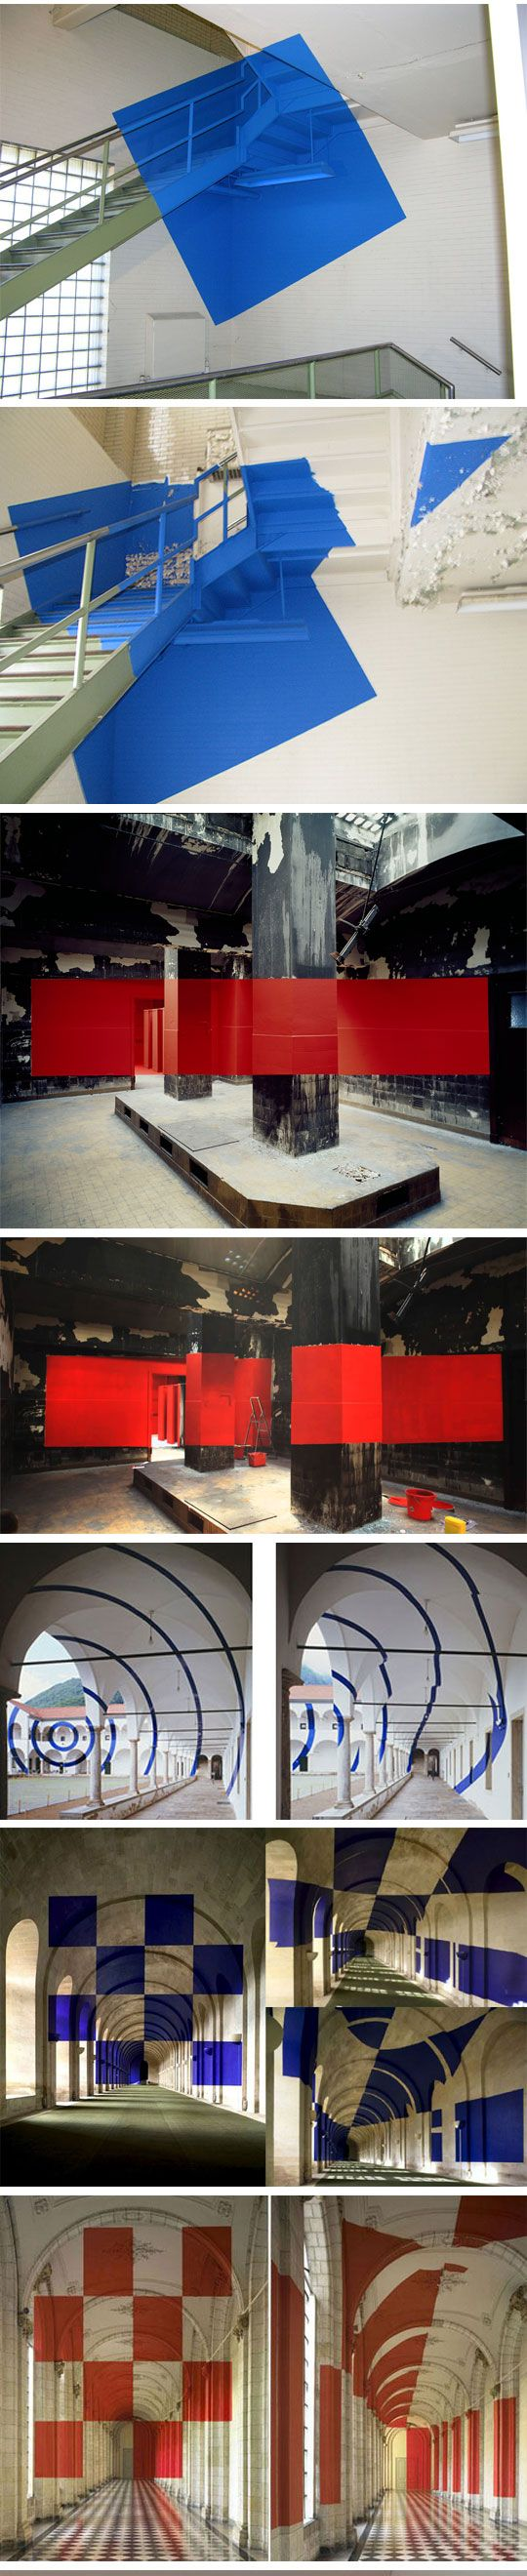 Incredible Art That Can Only Be Viewed From One Angle. By George Rousse